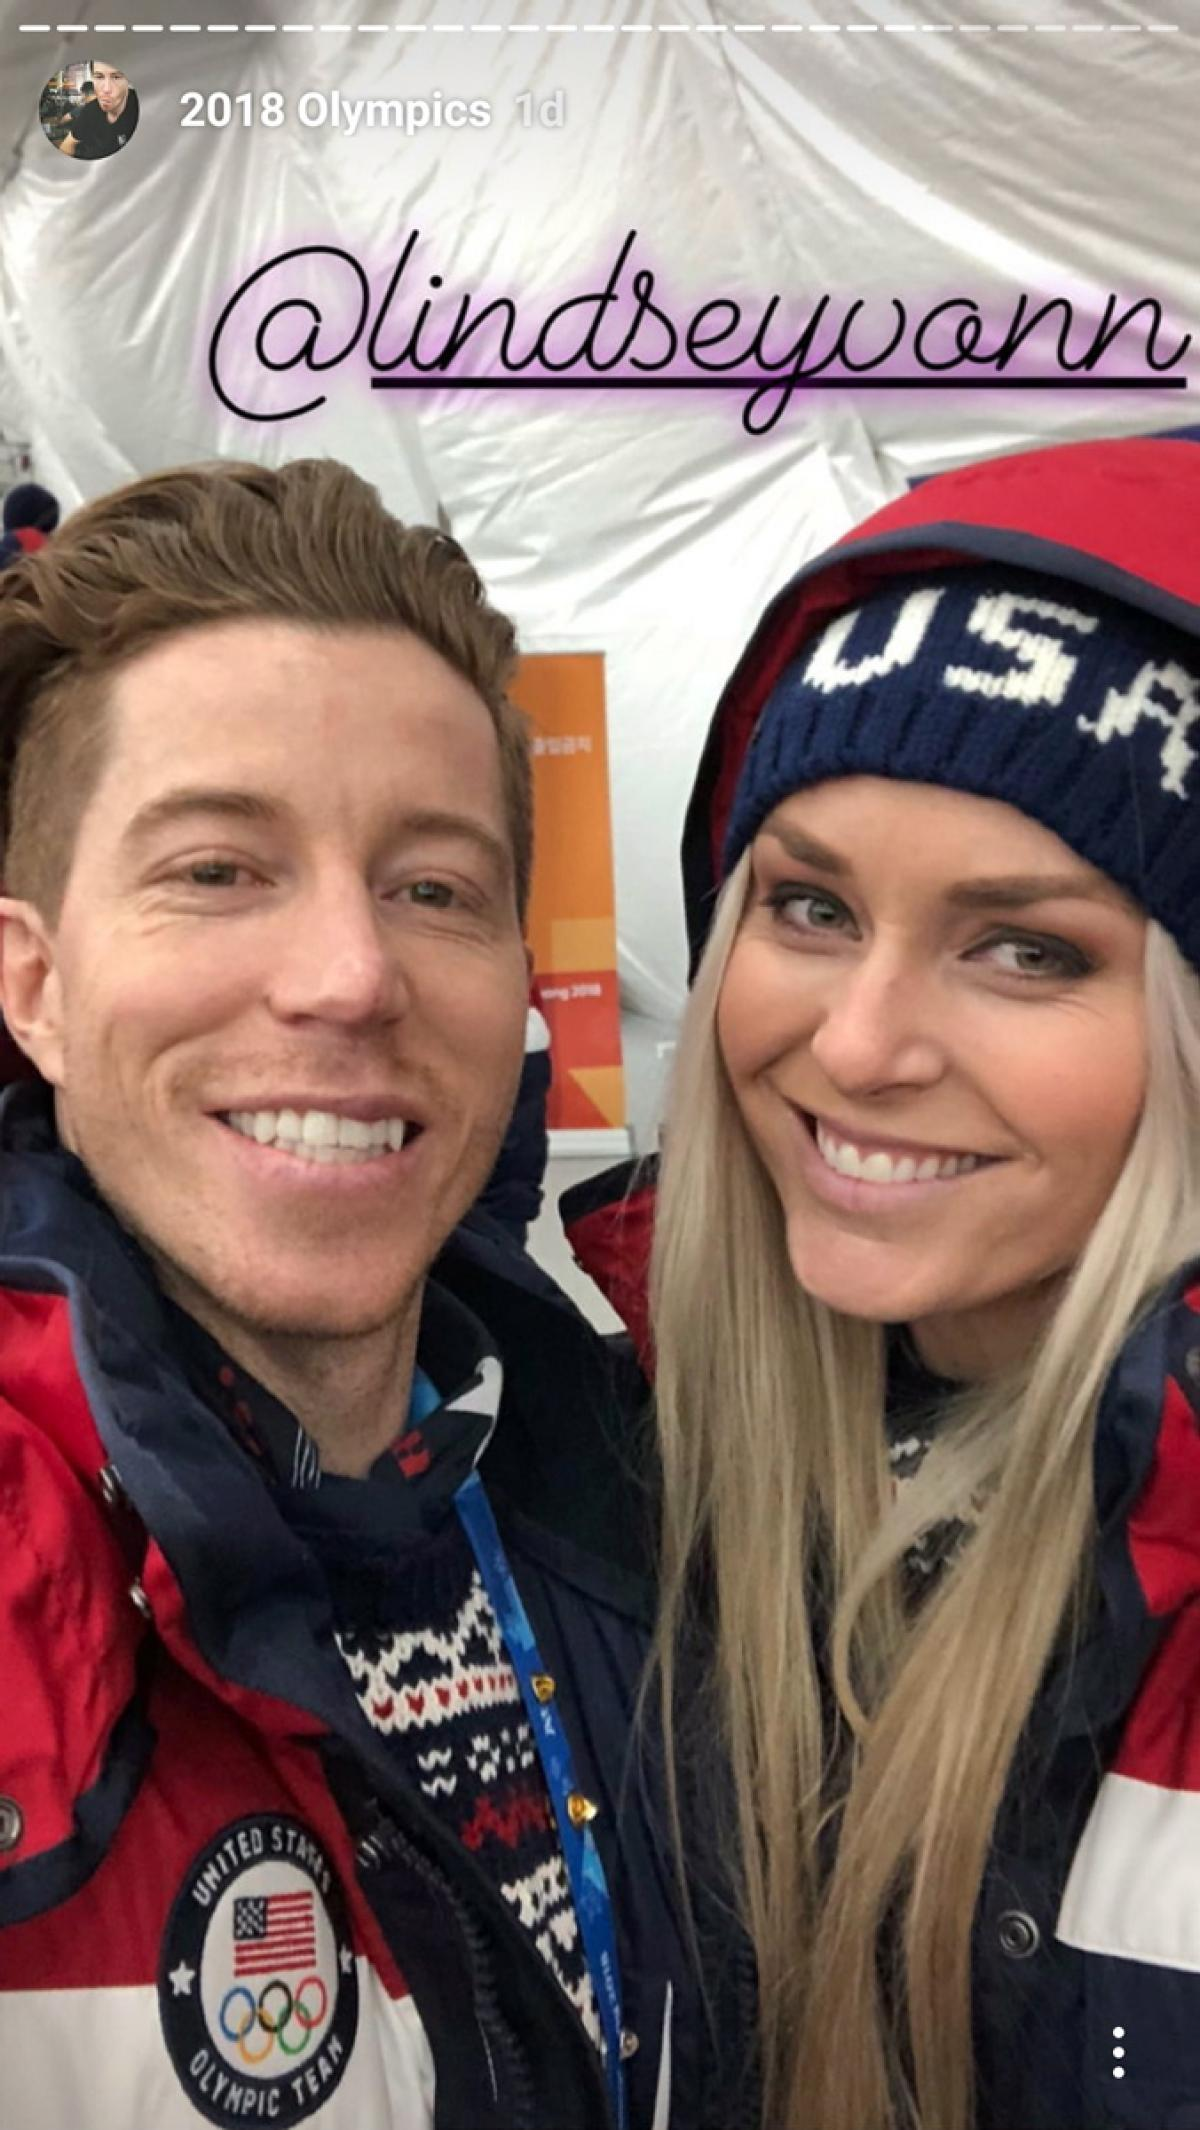 shaun-white-lindsey-vonn-selfie-577x1024 Day in the Life  7355381619d